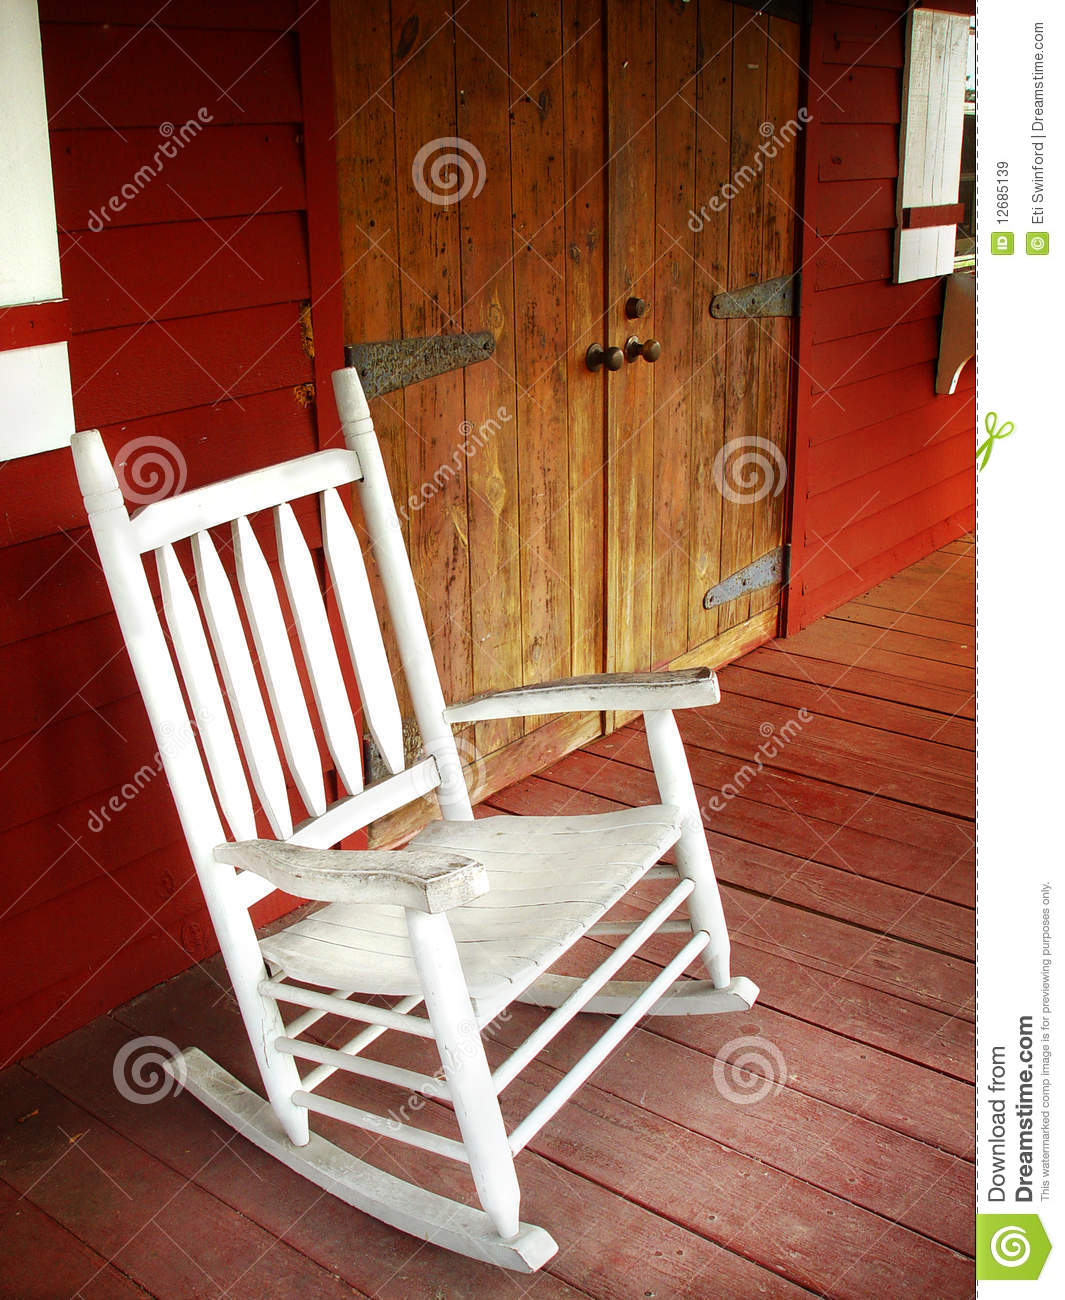 Excellent Rocking Chair Stock Image Image Of Beckoning Planks 12685139 Onthecornerstone Fun Painted Chair Ideas Images Onthecornerstoneorg